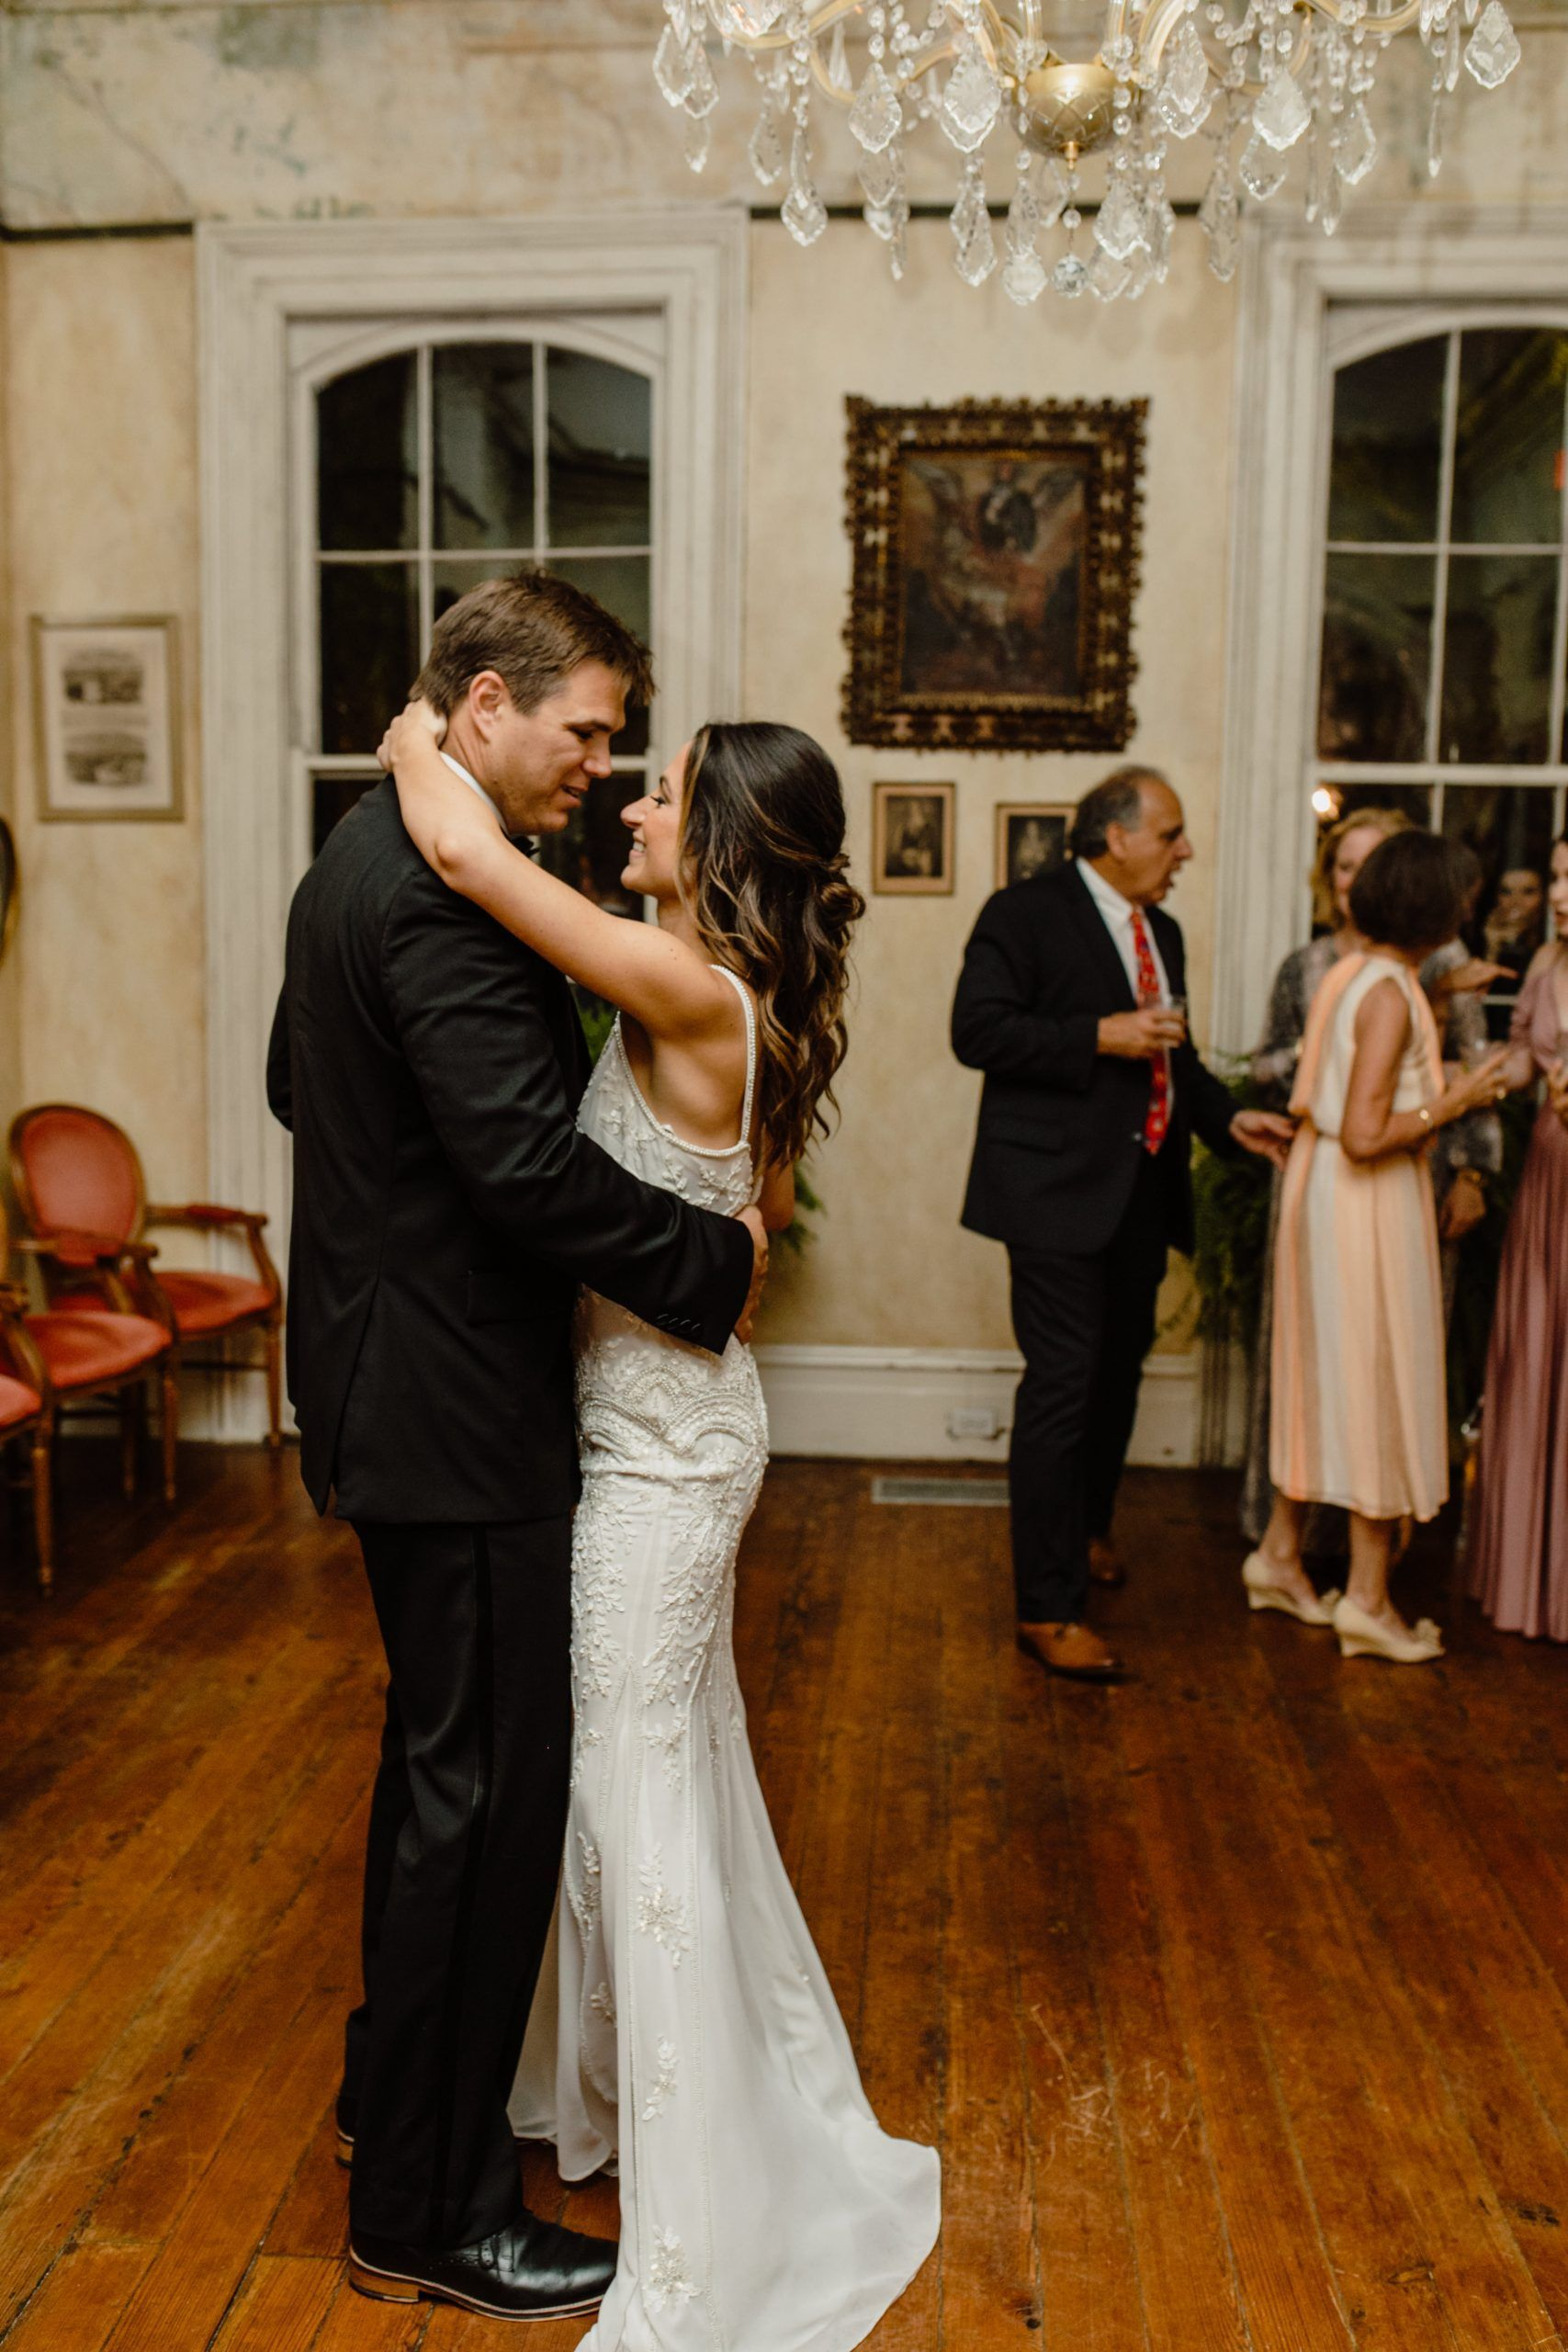 A Classic New Orleans Wedding At Cavan Louisiana Elopement And Wedding Photographer In 2020 New Orleans Wedding Wedding First Look New Orleans